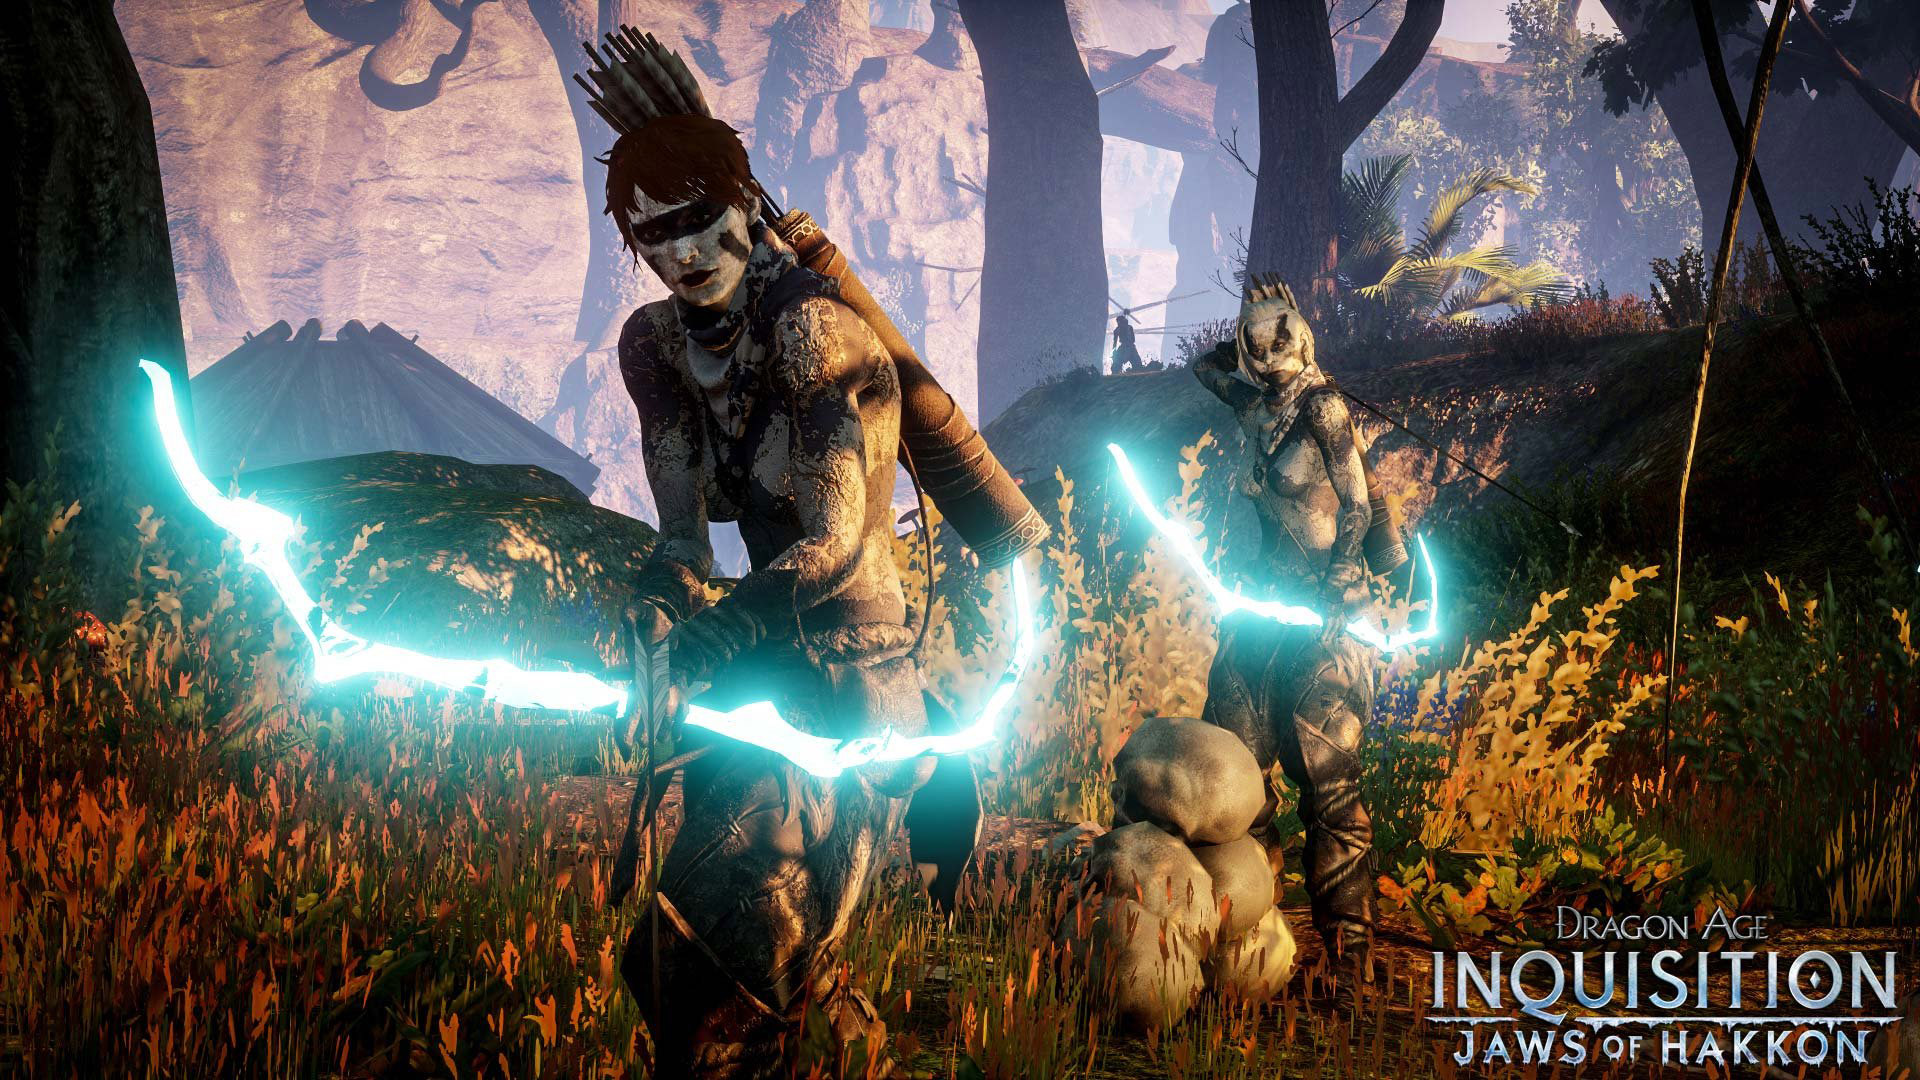 Free Dragon Age: Inquisition Wallpaper in 1920x1080